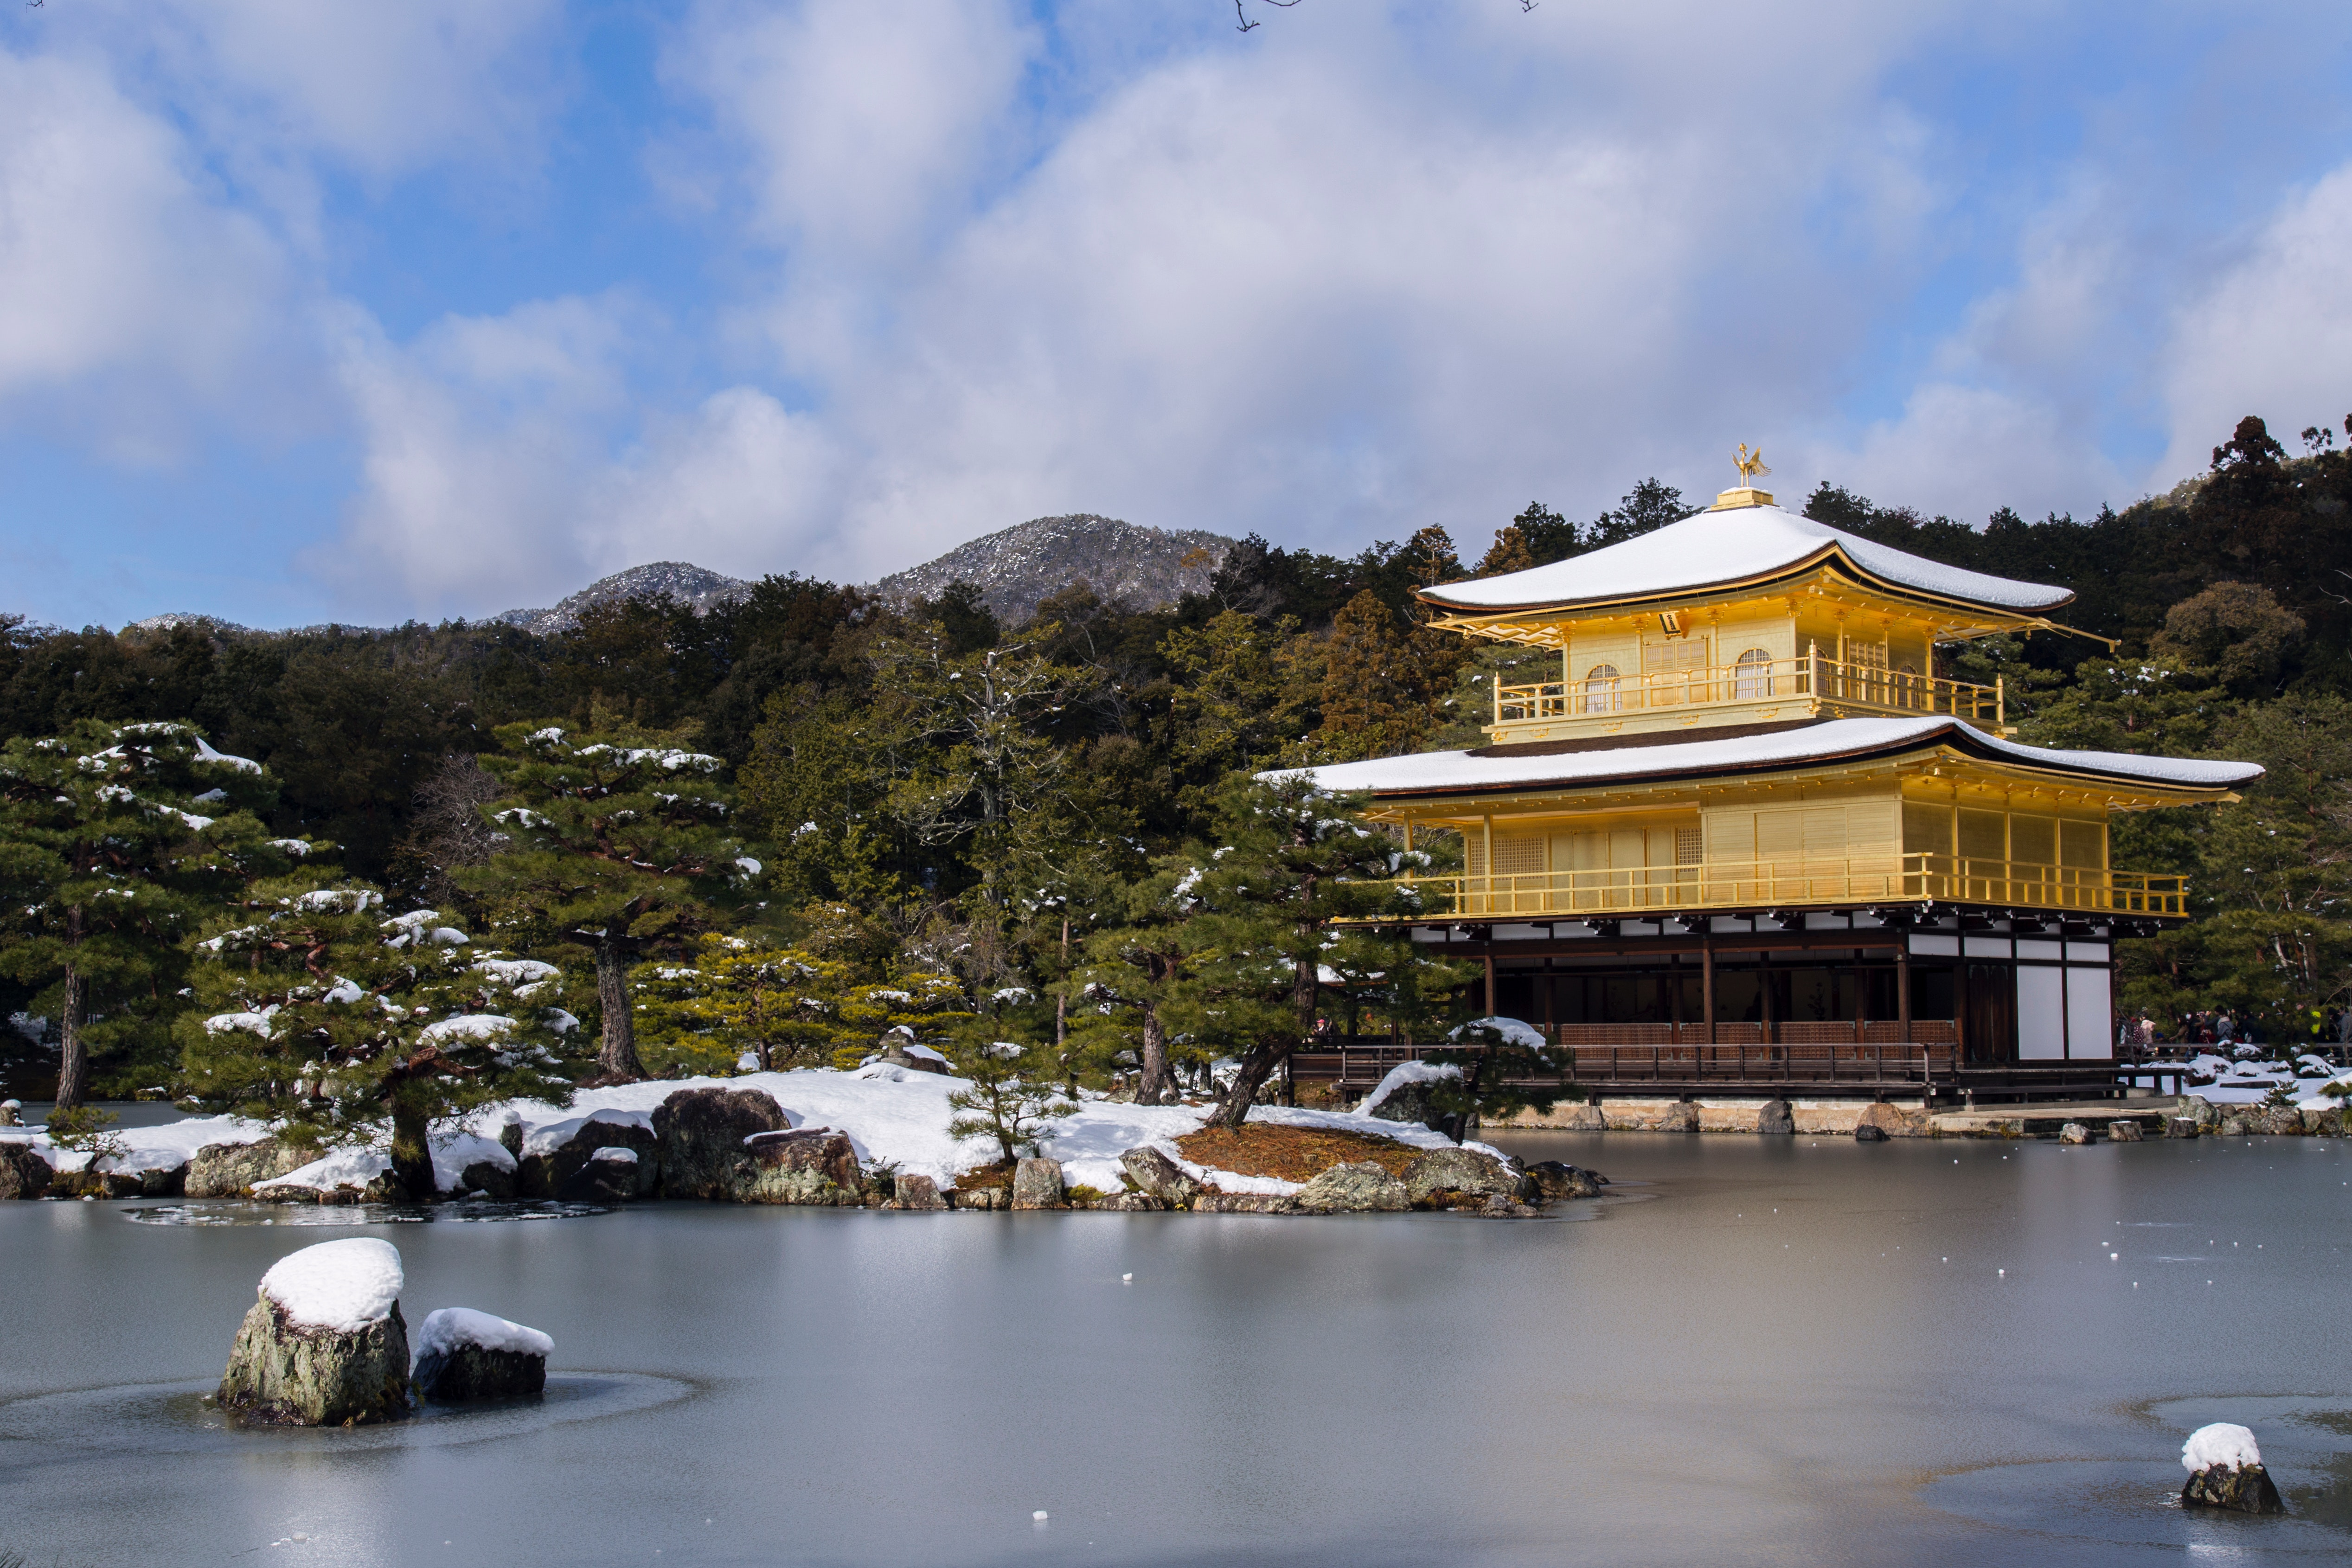 Temple Near Body Of Water Surrounded By Trees With Mountain Background, Architecture, Building, Cold, Daylight, HQ Photo